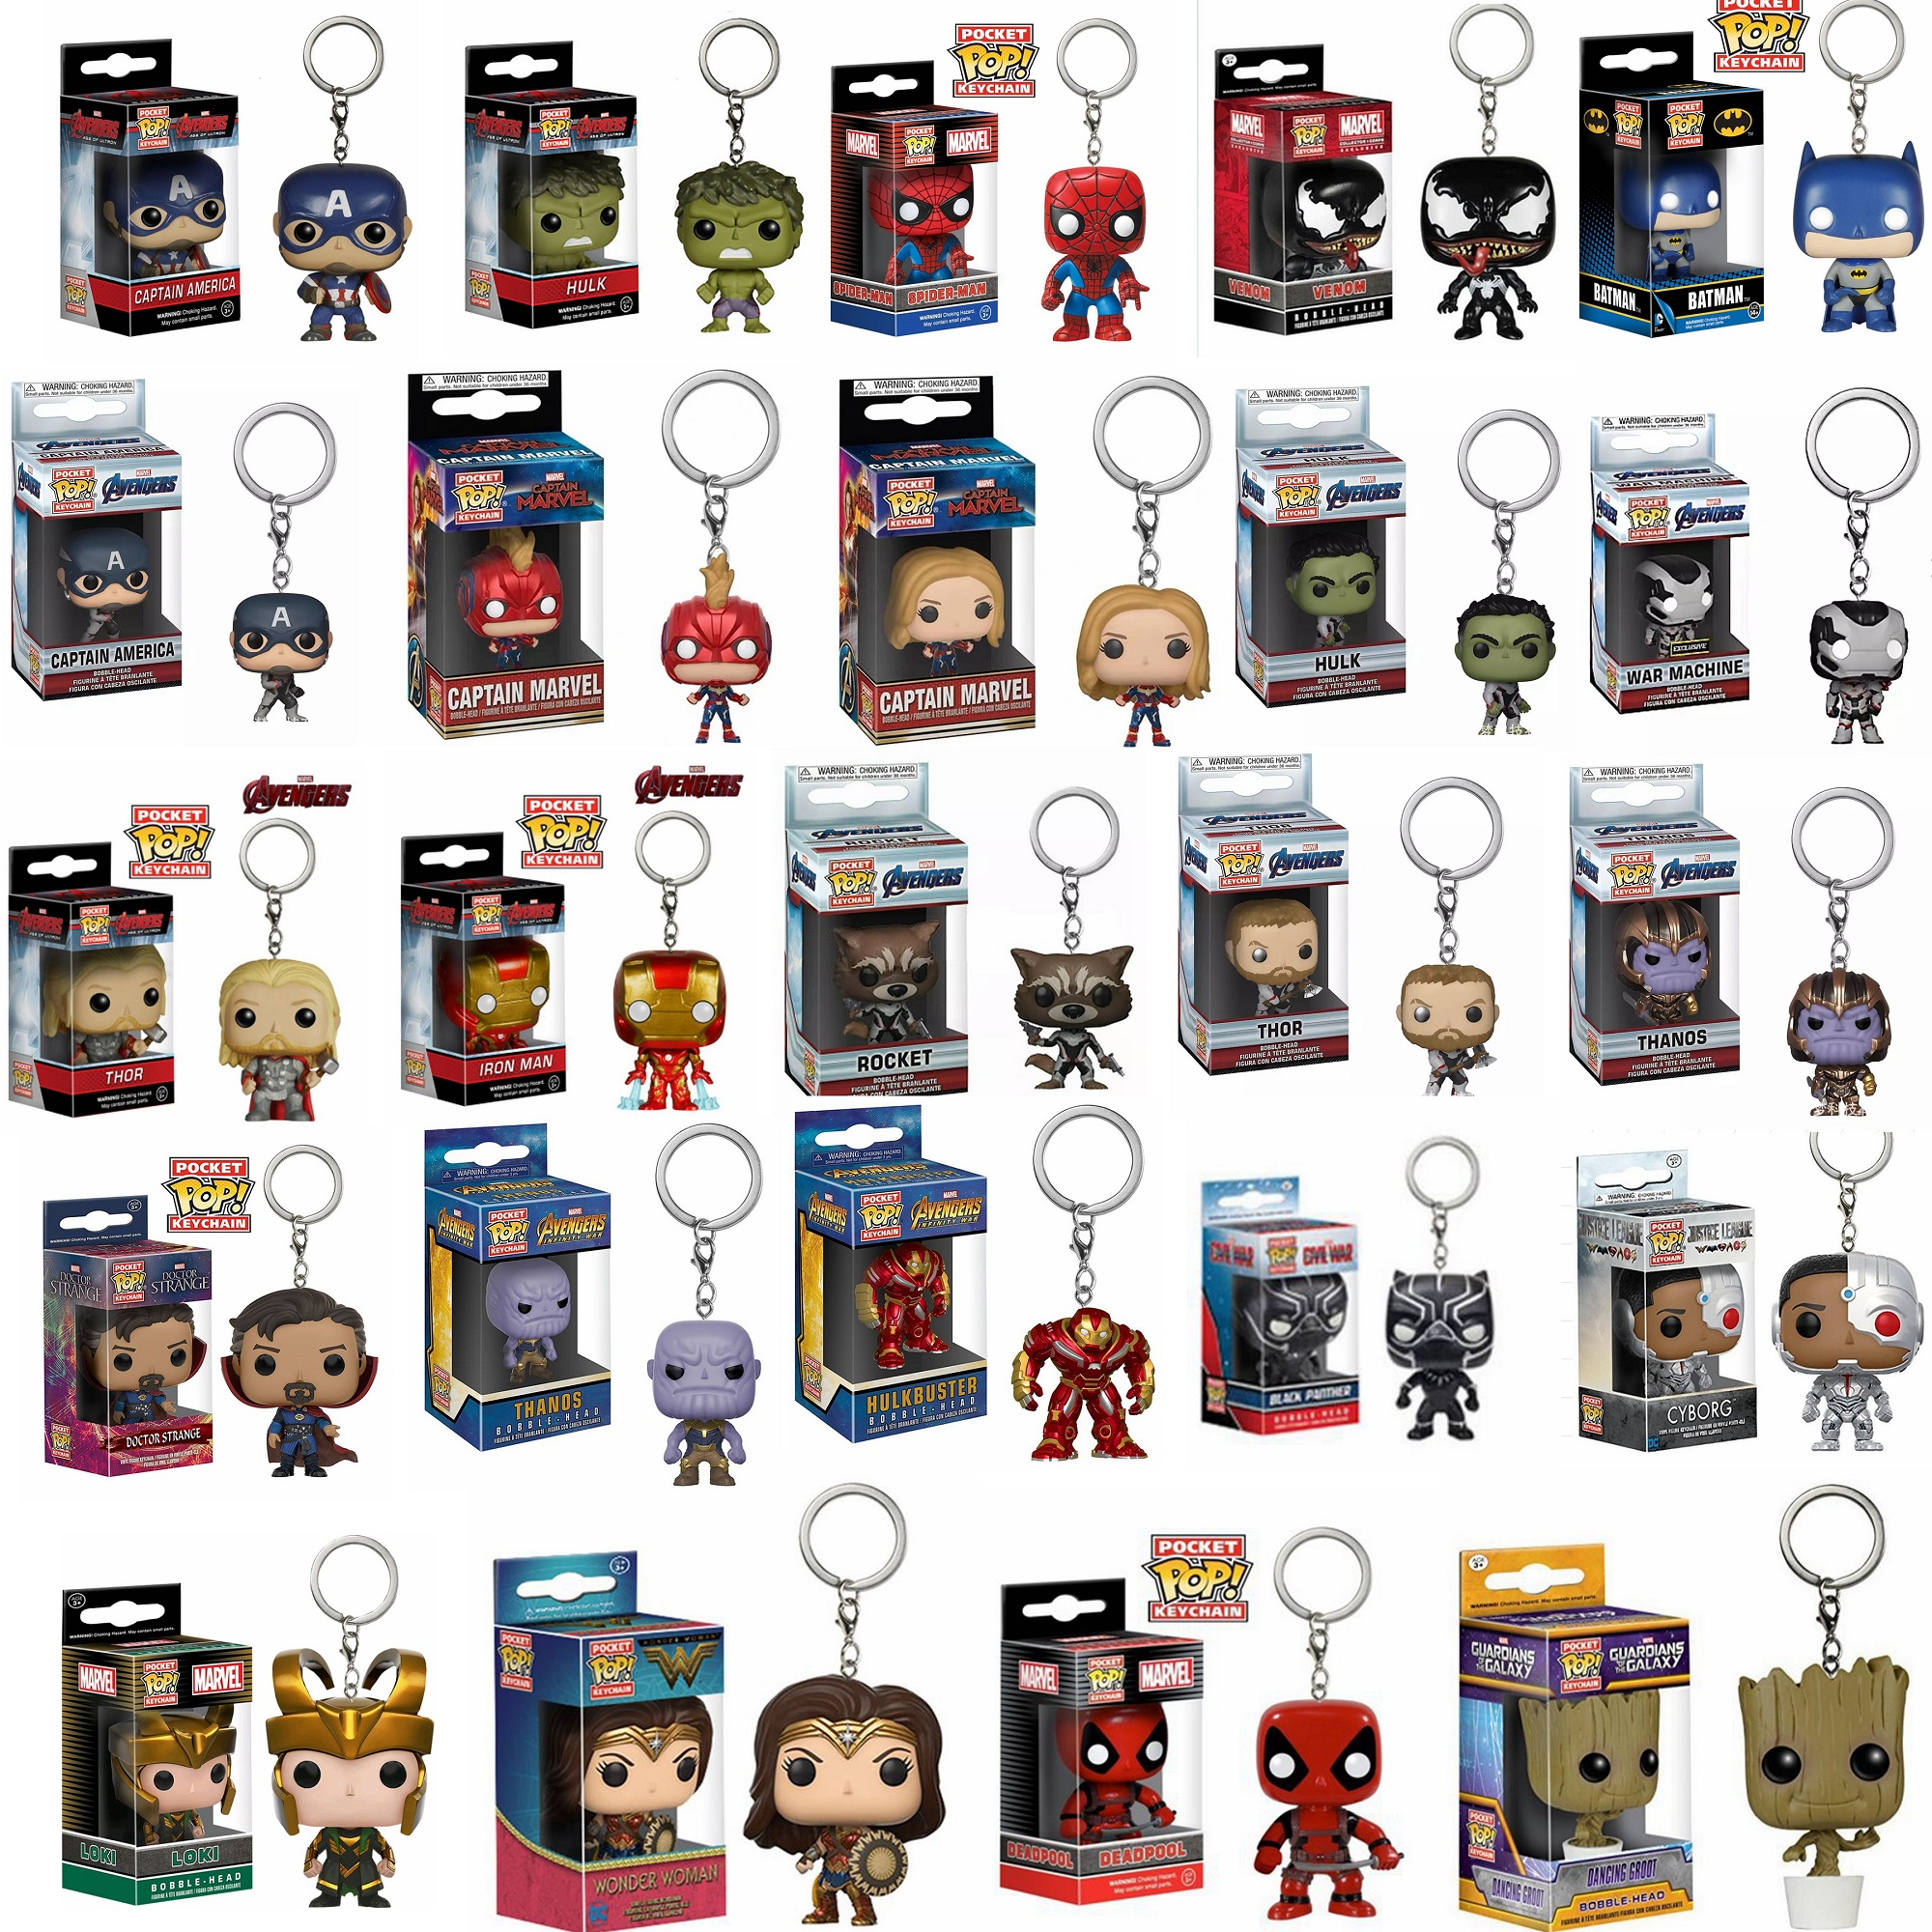 funko-pop-avengers-4-endgame-captain-font-b-marvel-b-font-venom-deadpool-iron-man-keychain-action-figures-toys-for-children-christmas-gift